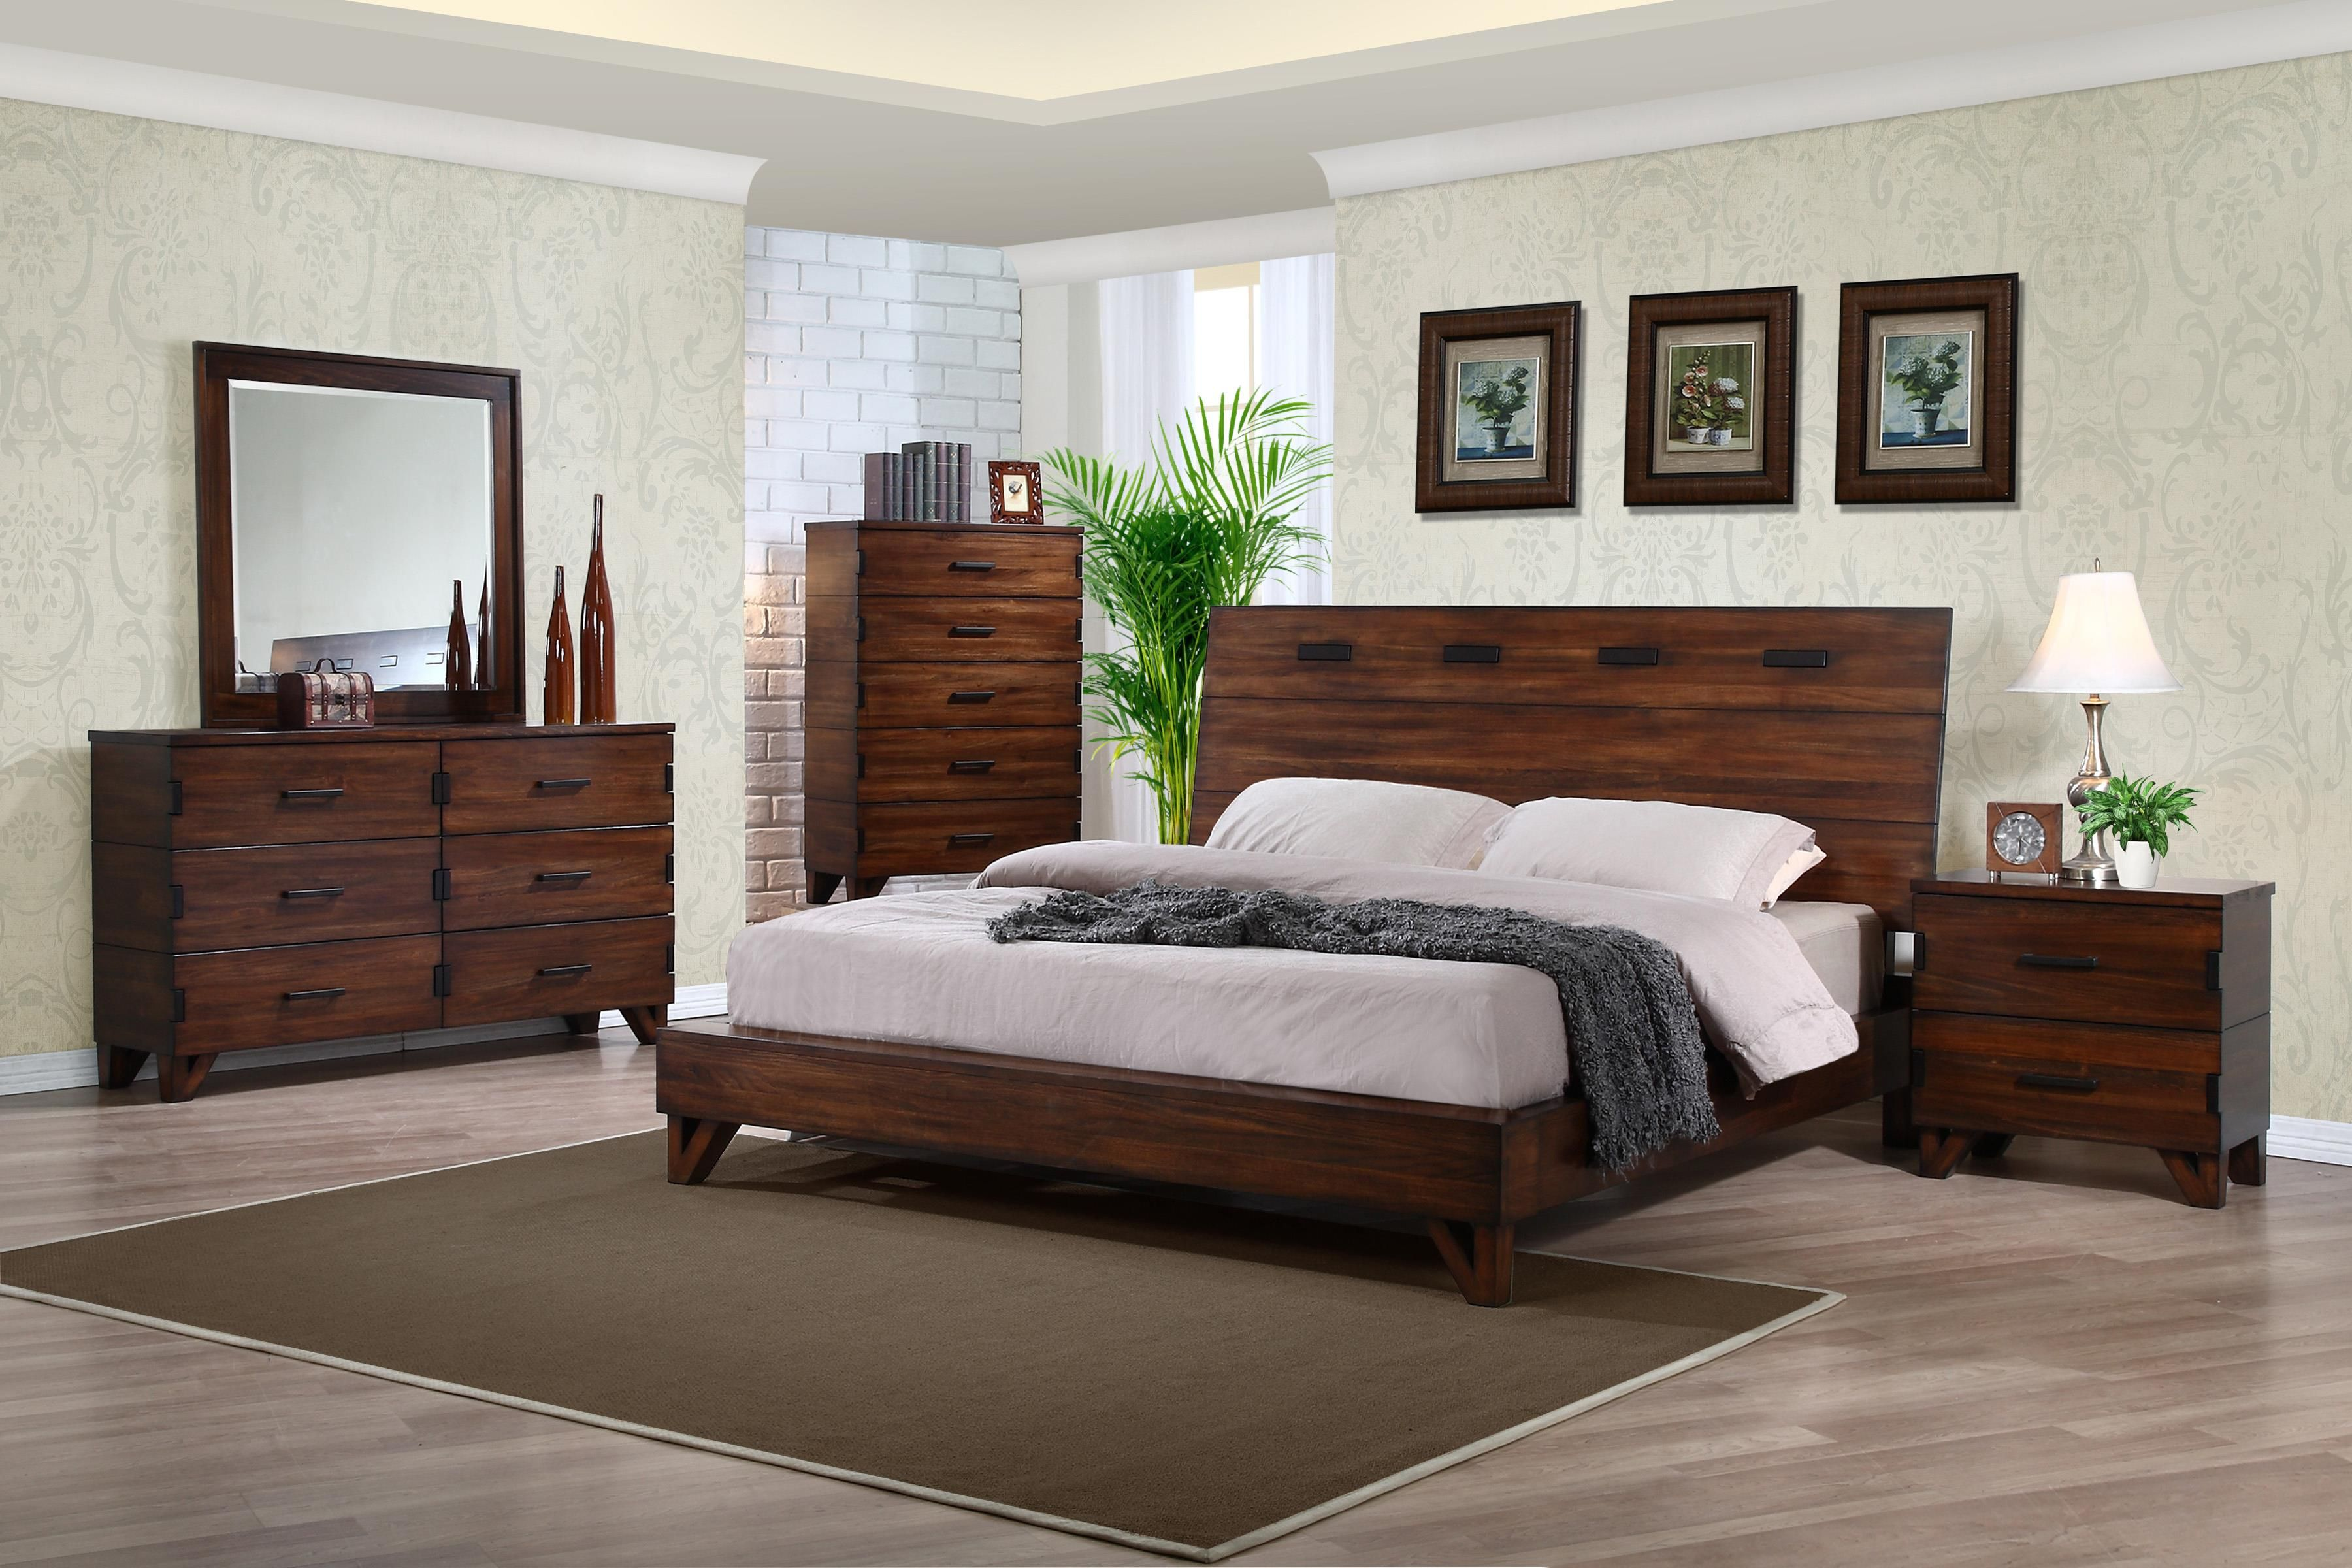 Avalon queen bedroom group by coaster home sweet home pinterest